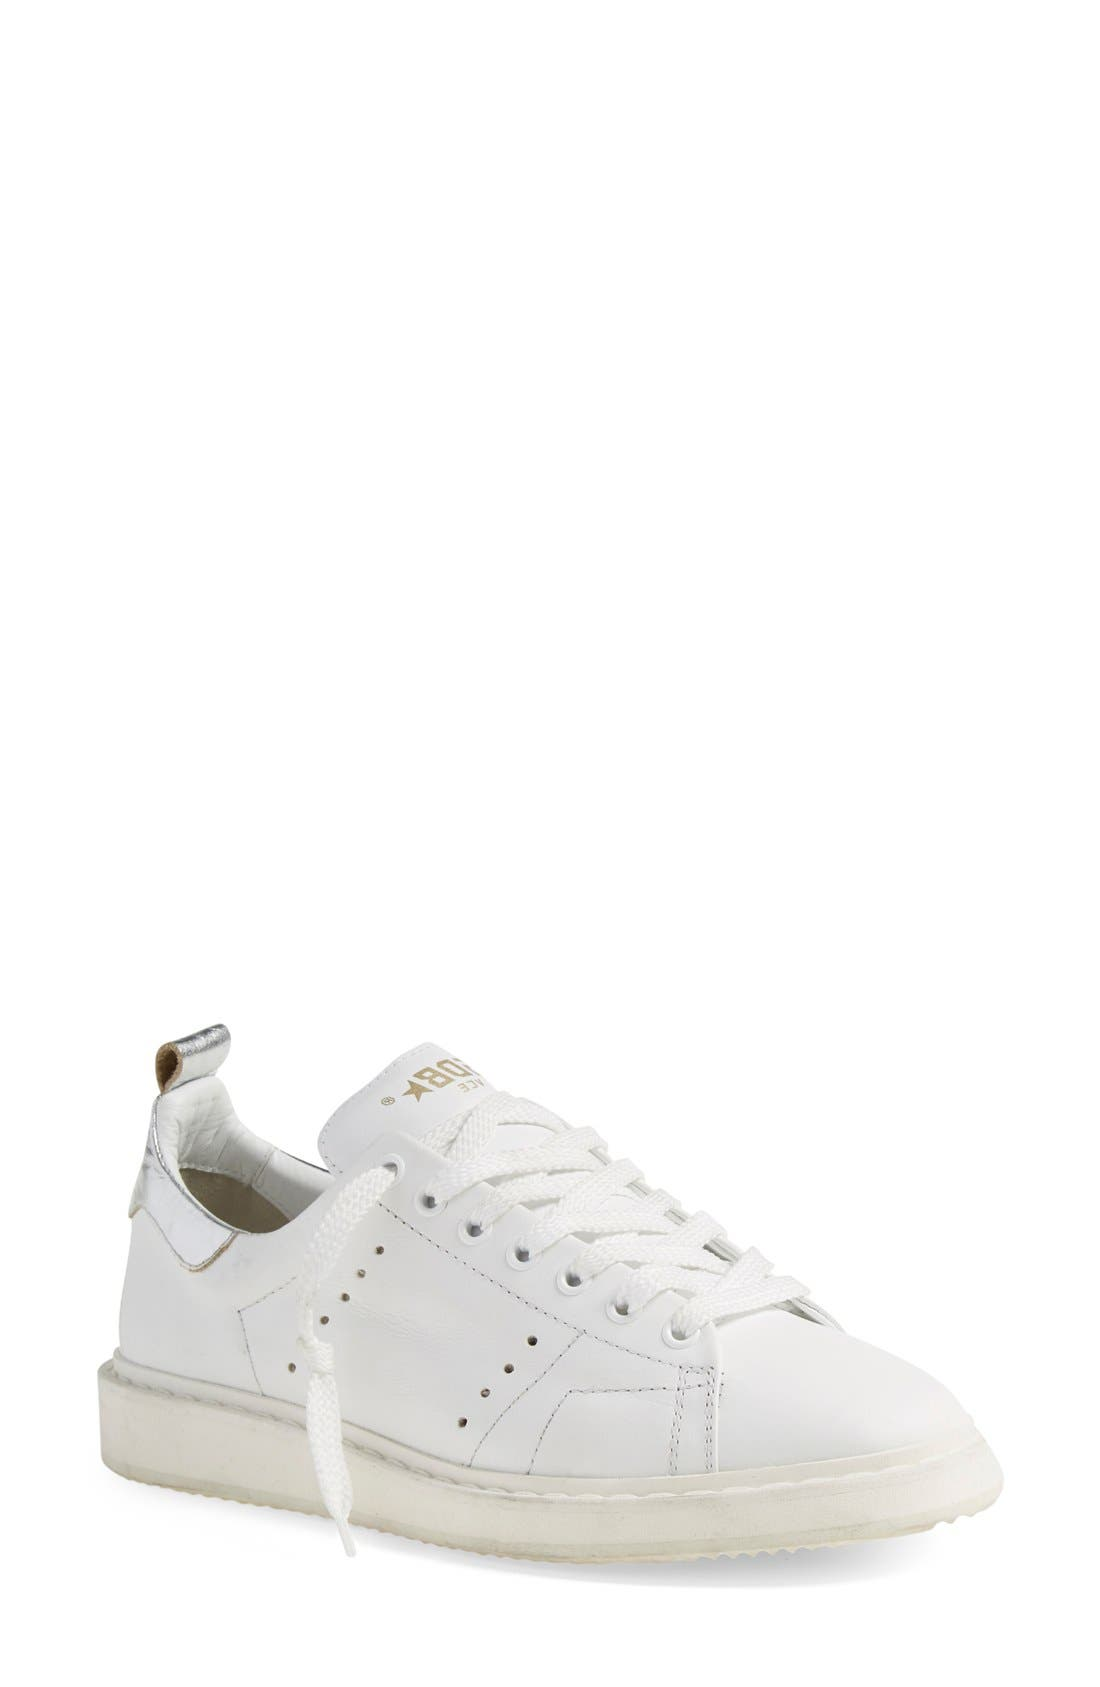 'Starter' Low Top Sneaker,                         Main,                         color,